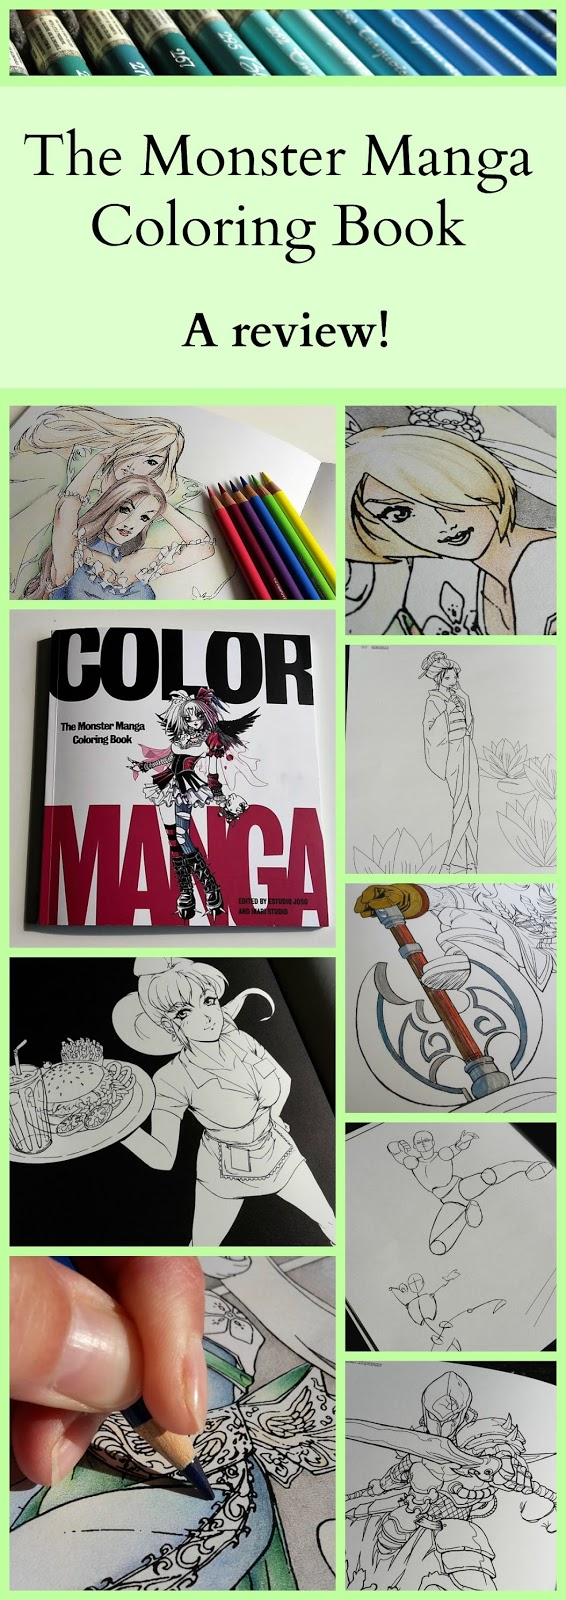 the monster manga coloring book a review - Manga Coloring Book